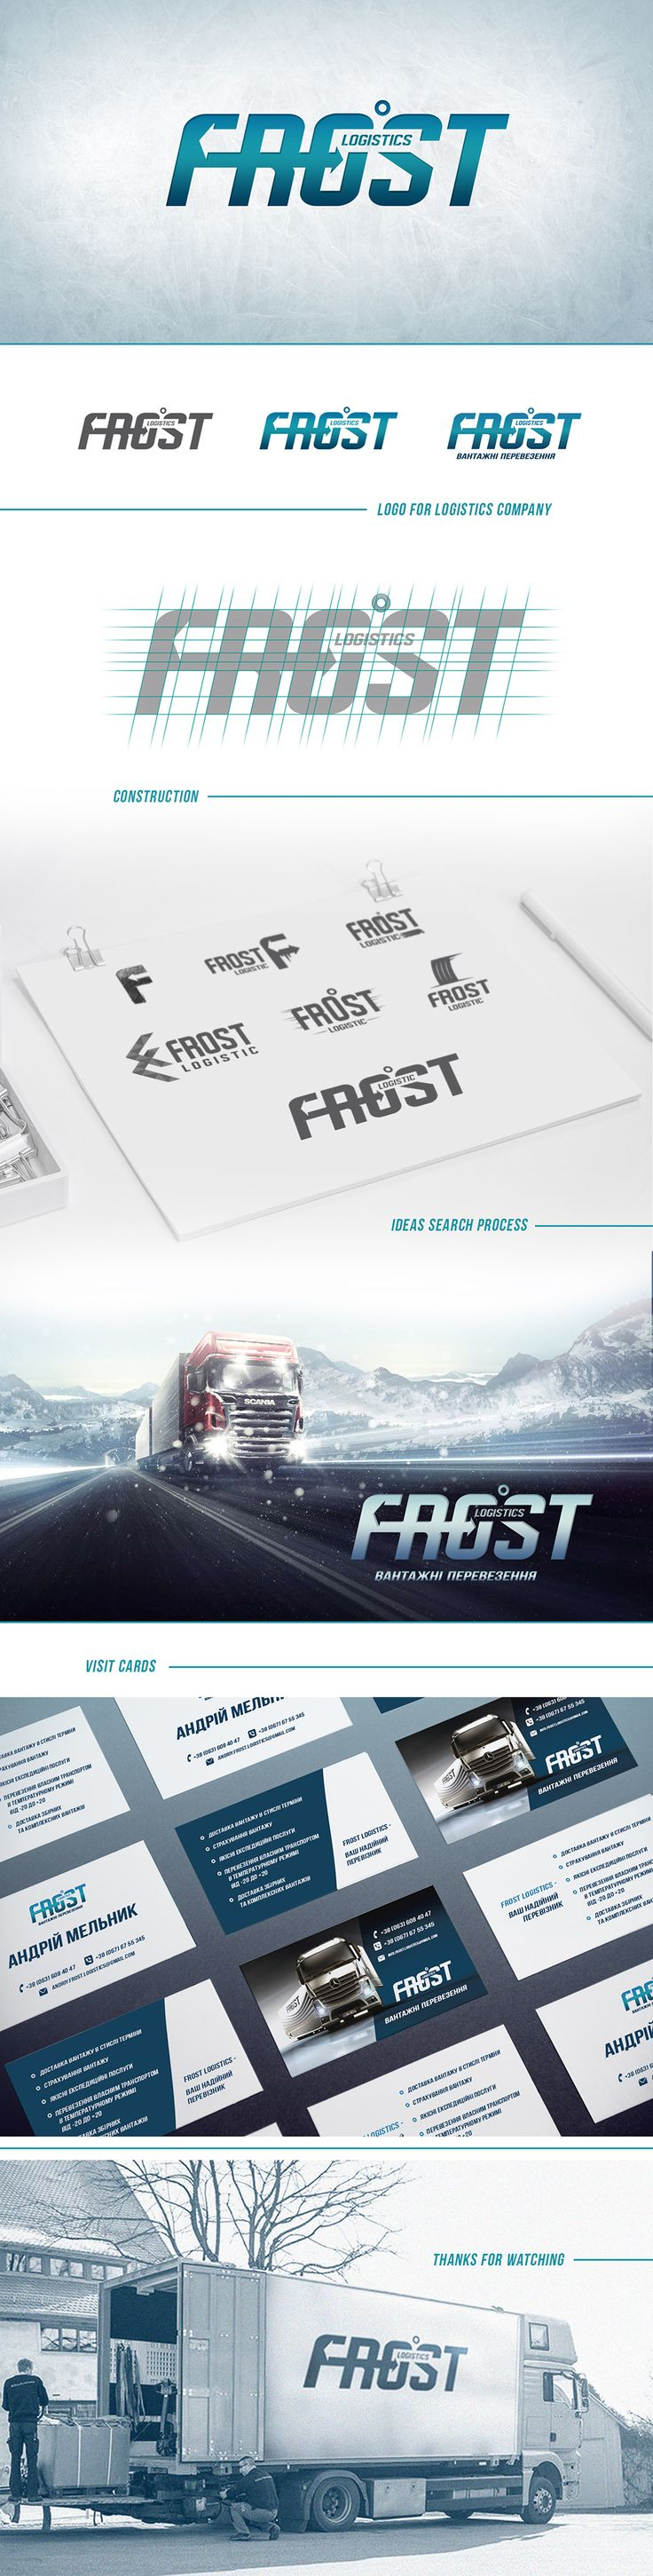 FROST logistics Logo on Behance #Frost #KEEF #Craft #Design #LogoDesign #Logo #Graphic #Illustration #Work #Art #Style